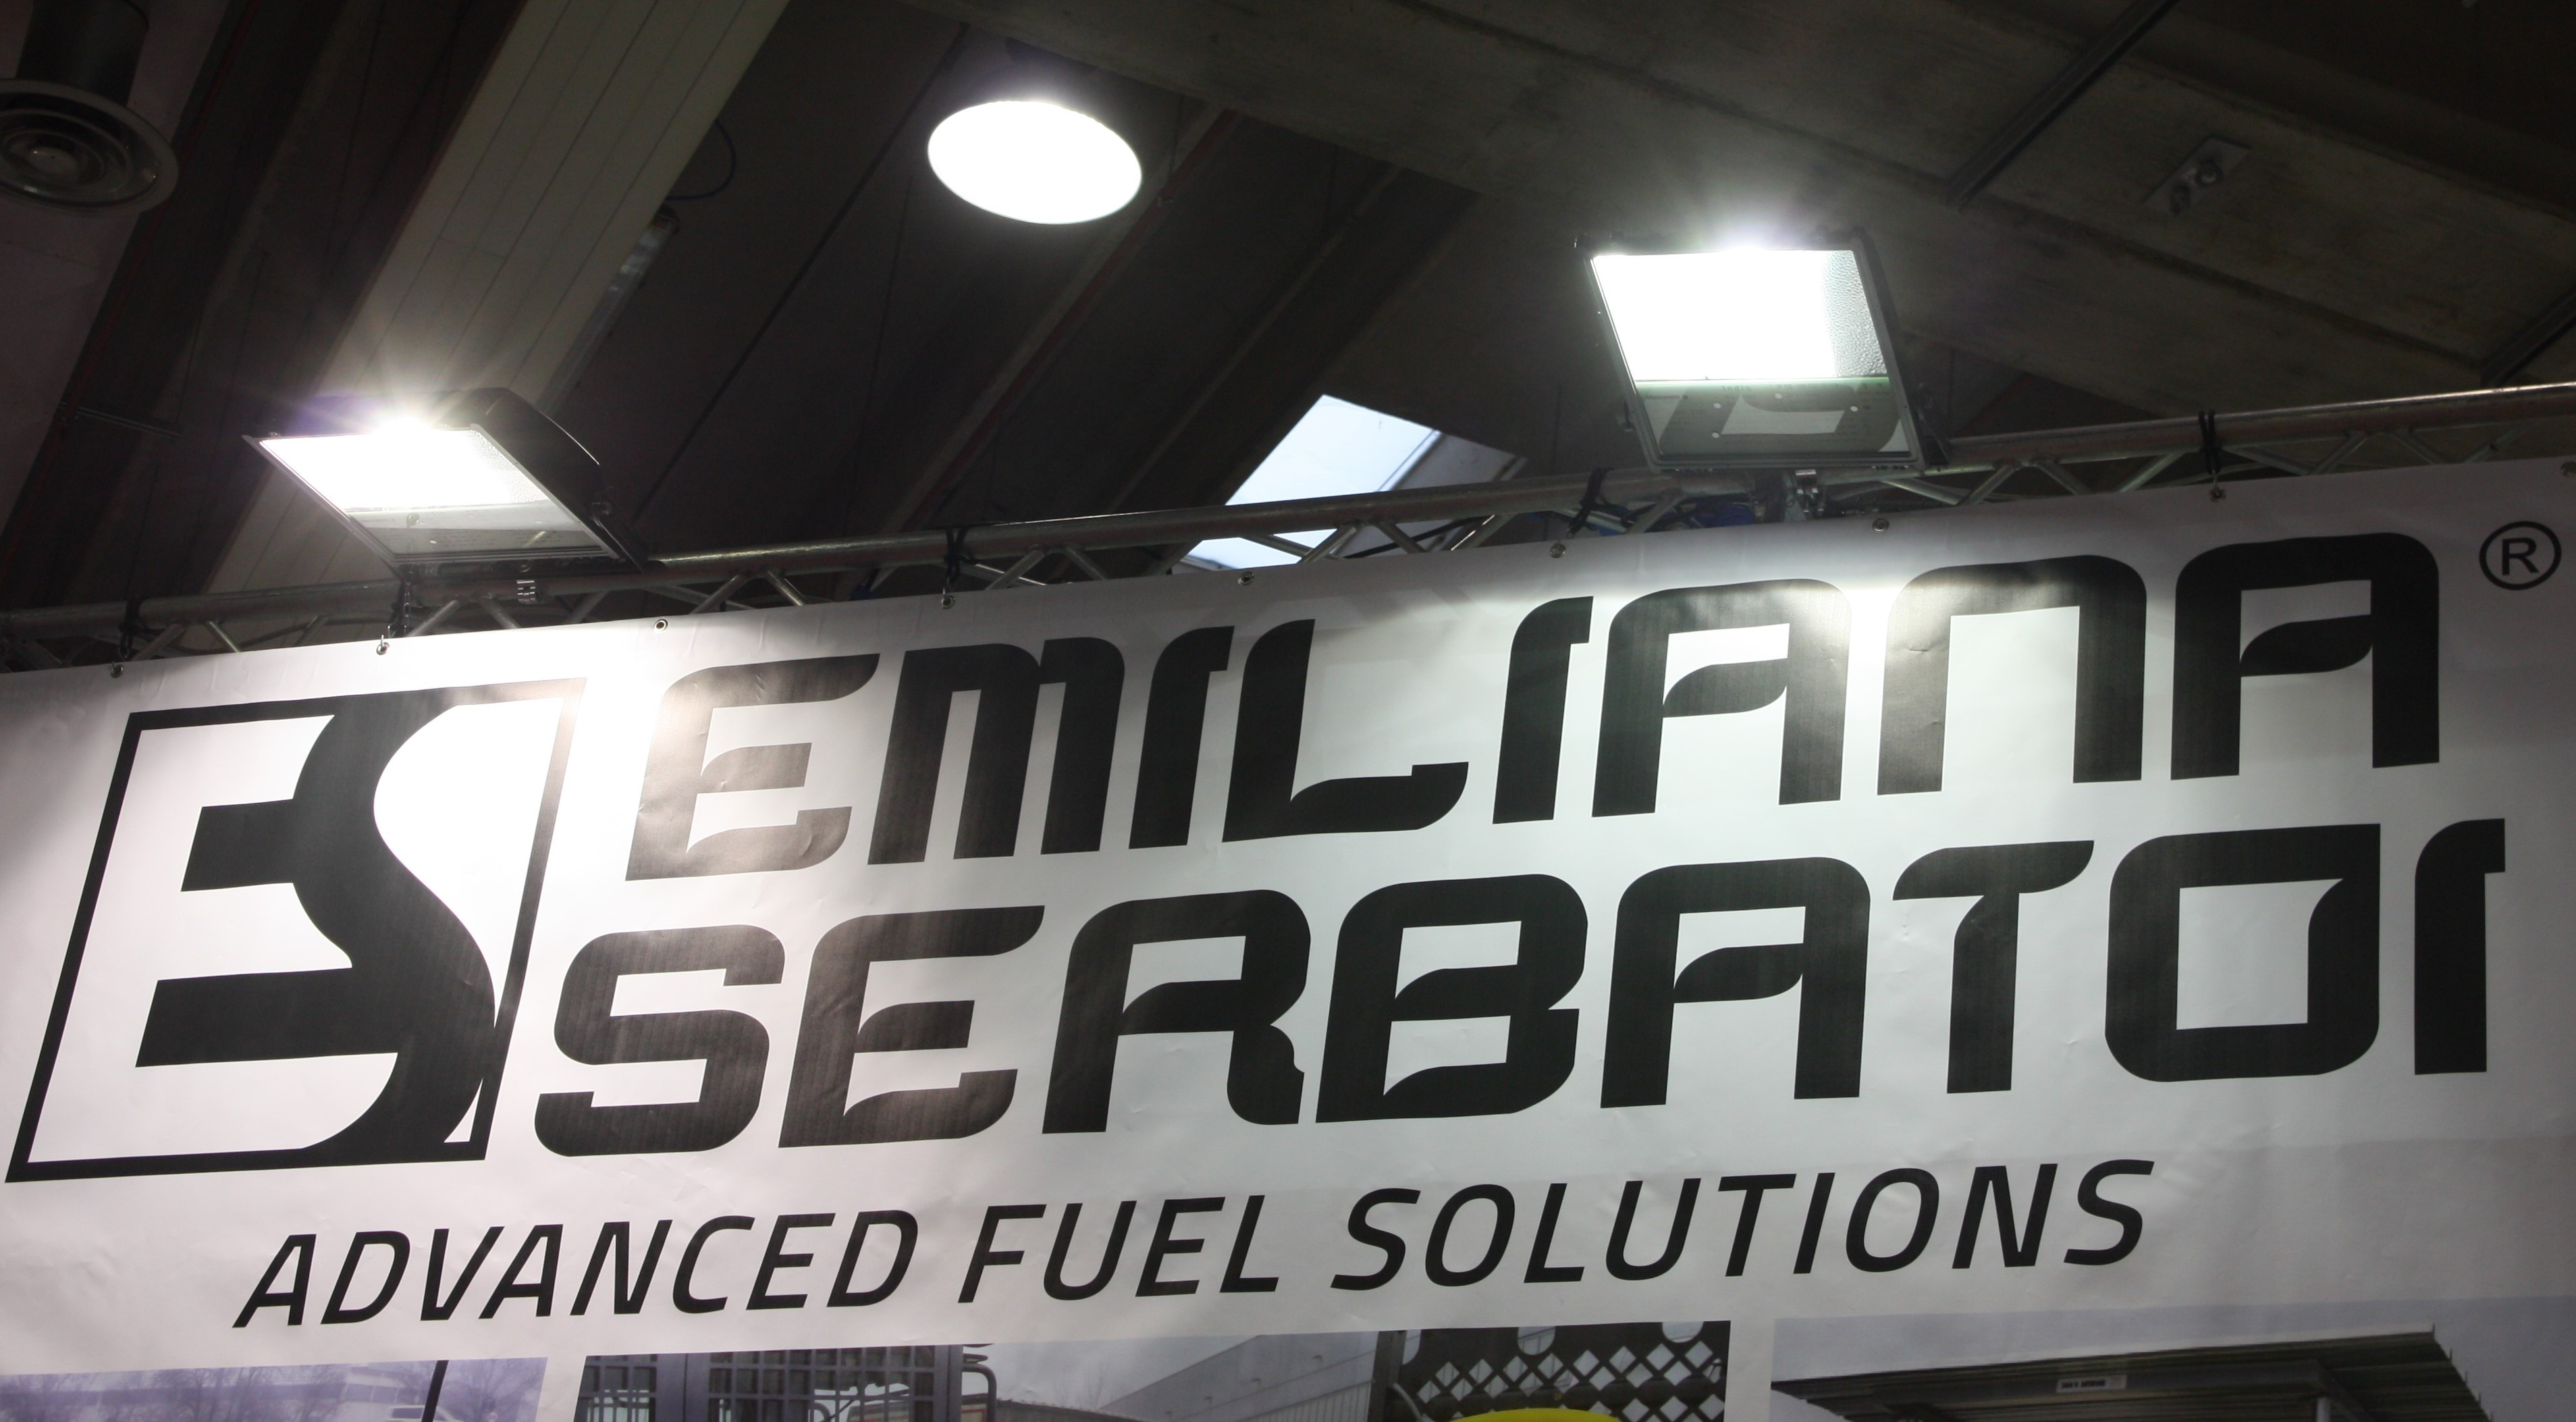 Amazing news at Emiliana Serbatoi's stand at Bauma